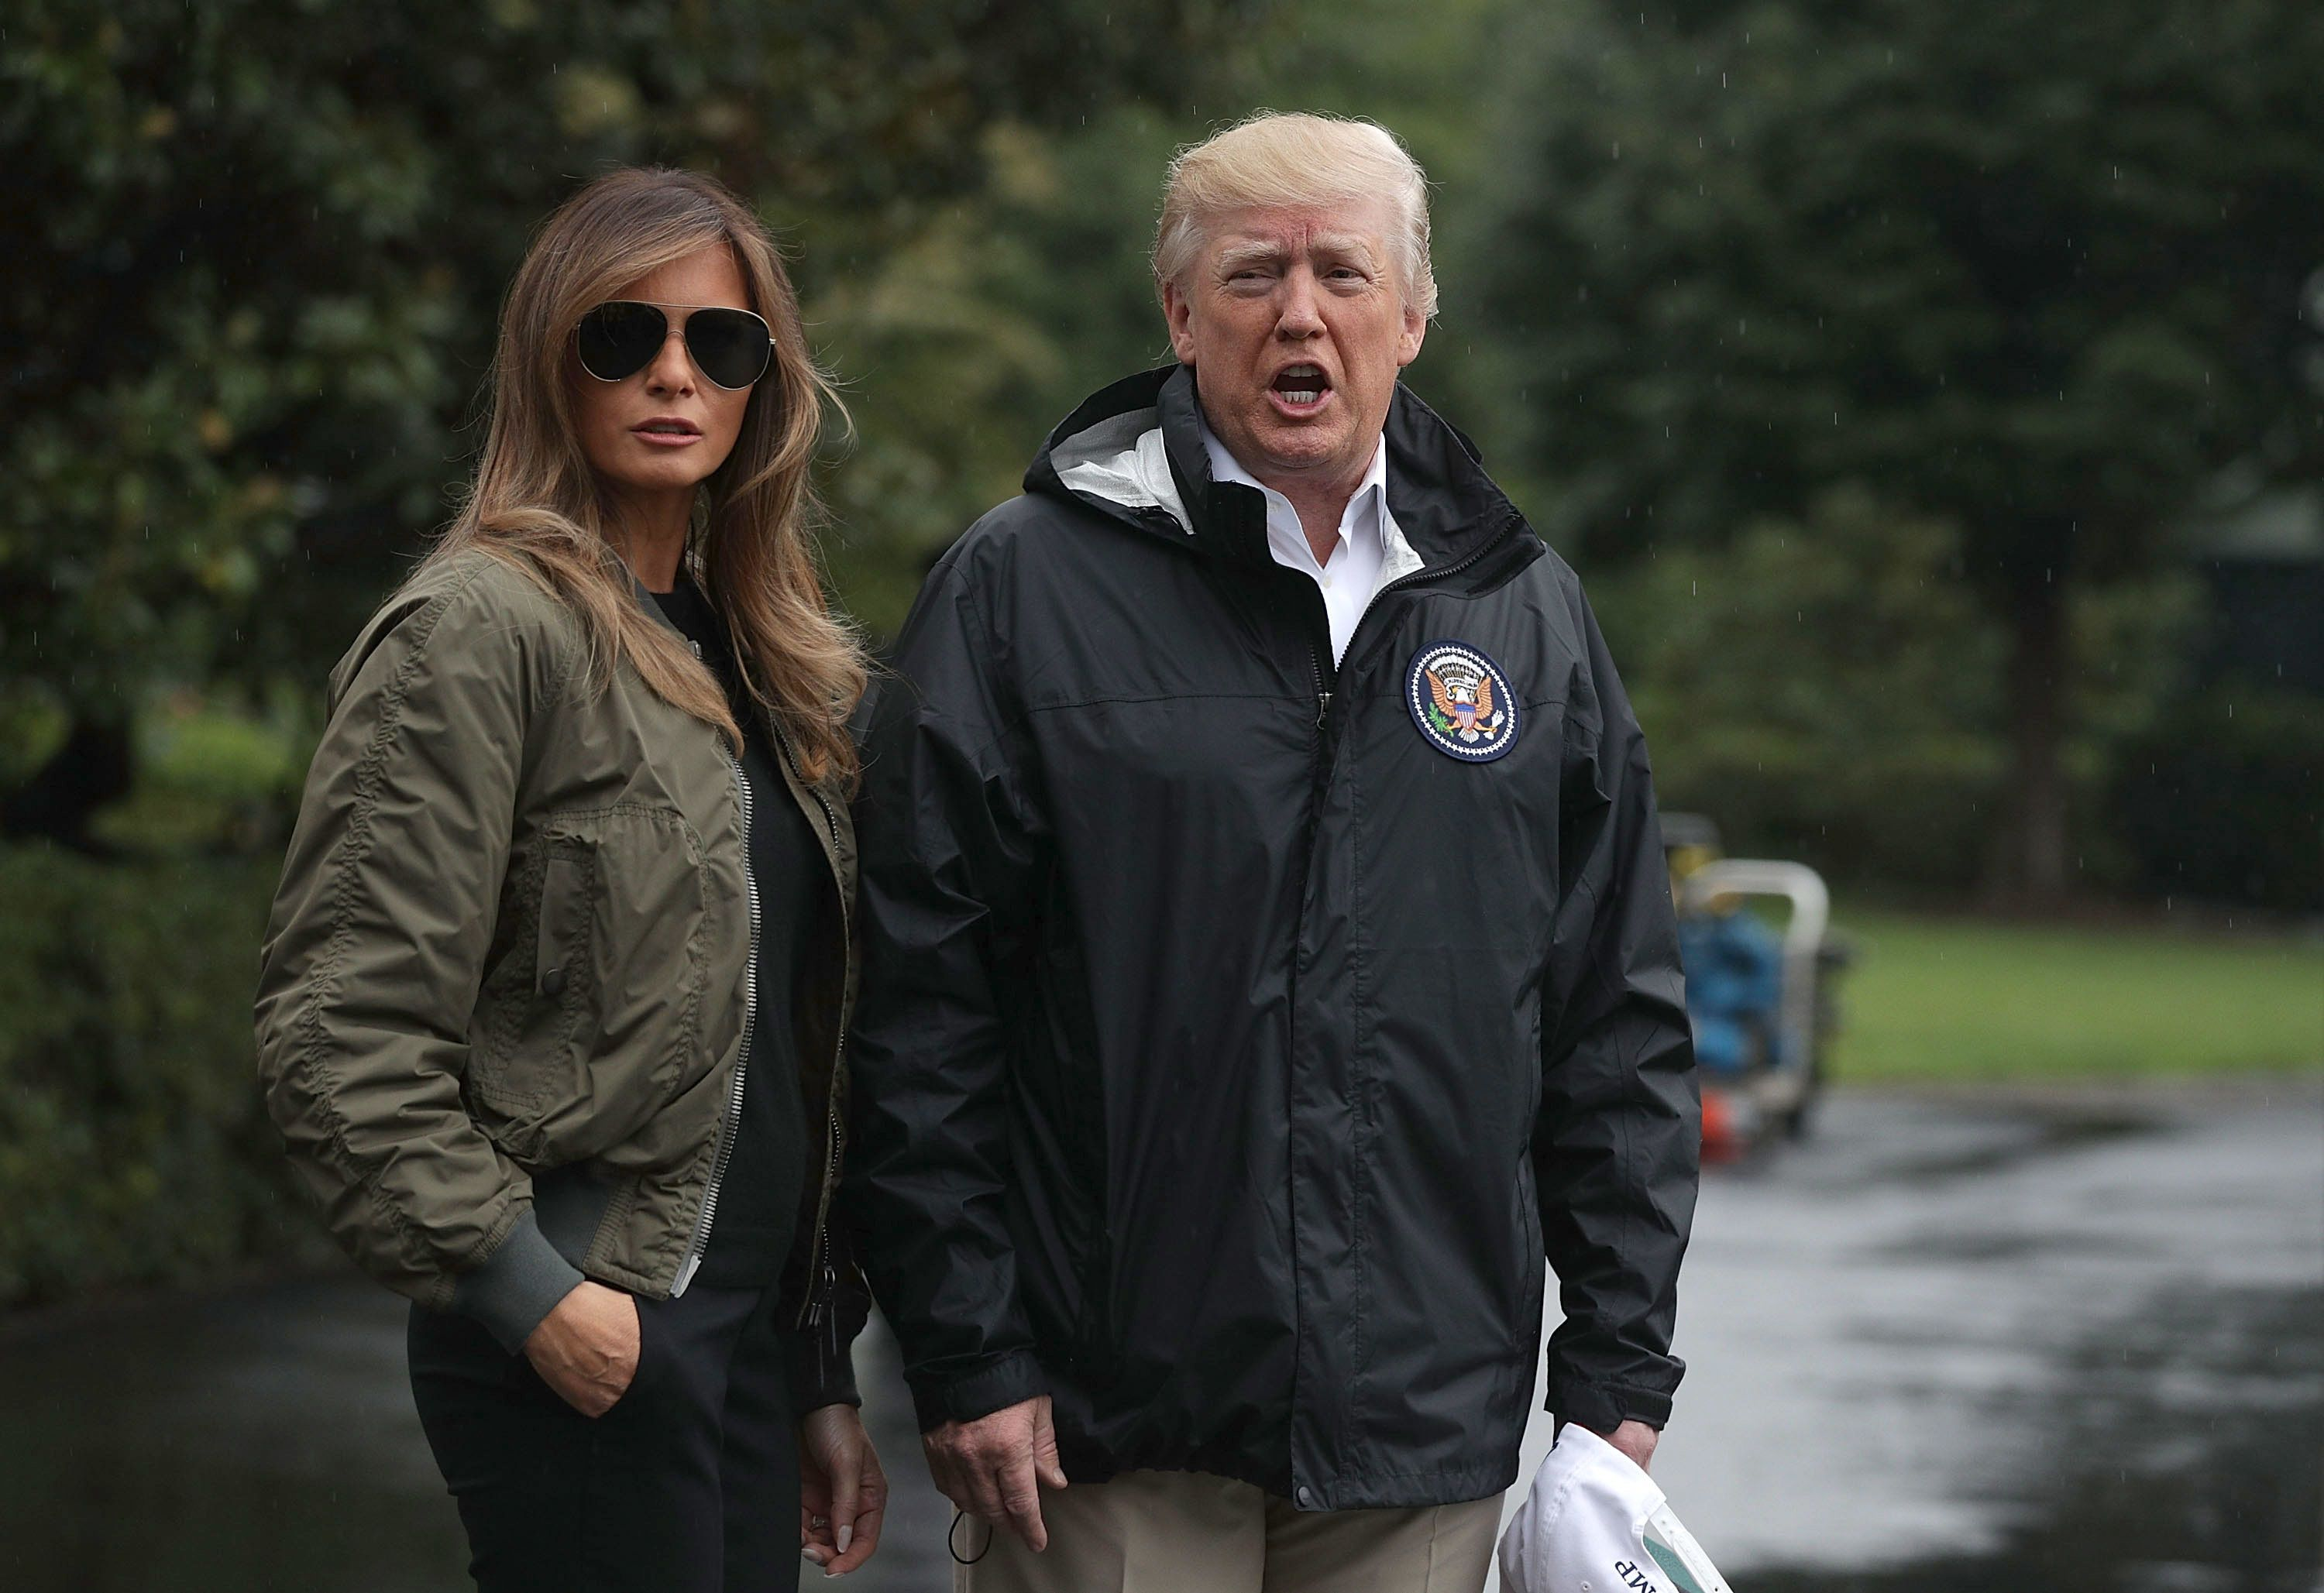 WASHINGTON, DC - AUGUST 29:  U.S. President Donald Trump speaks to members of the media briefly as first lady Melania Trump looks on prior to their Marine One departure from the White House August 29, 2017 in Washington, DC. President Trump was traveling to Texas to observe the Hurricane Harvey relief efforts.  (Photo by Alex Wong/Getty Images)